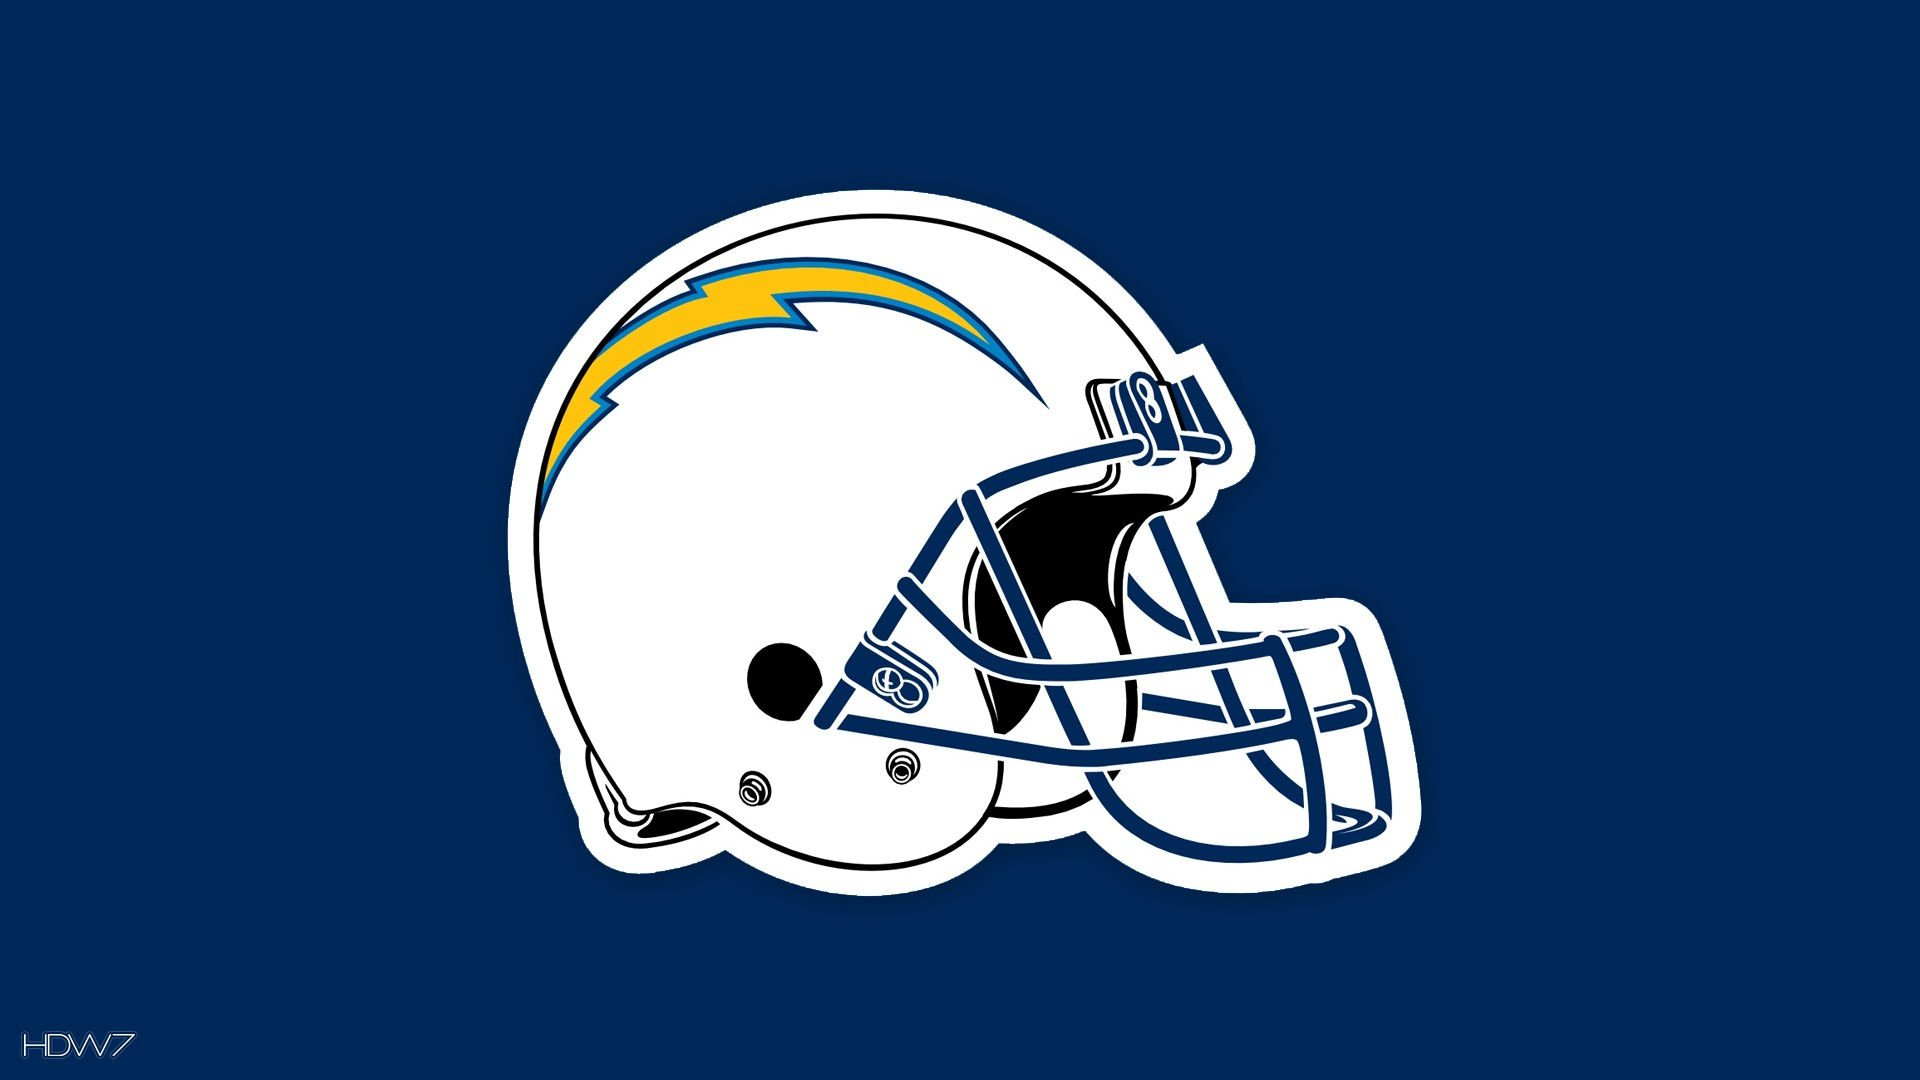 san diego chargers logo HD wallpaper gallery 143 1920x1080